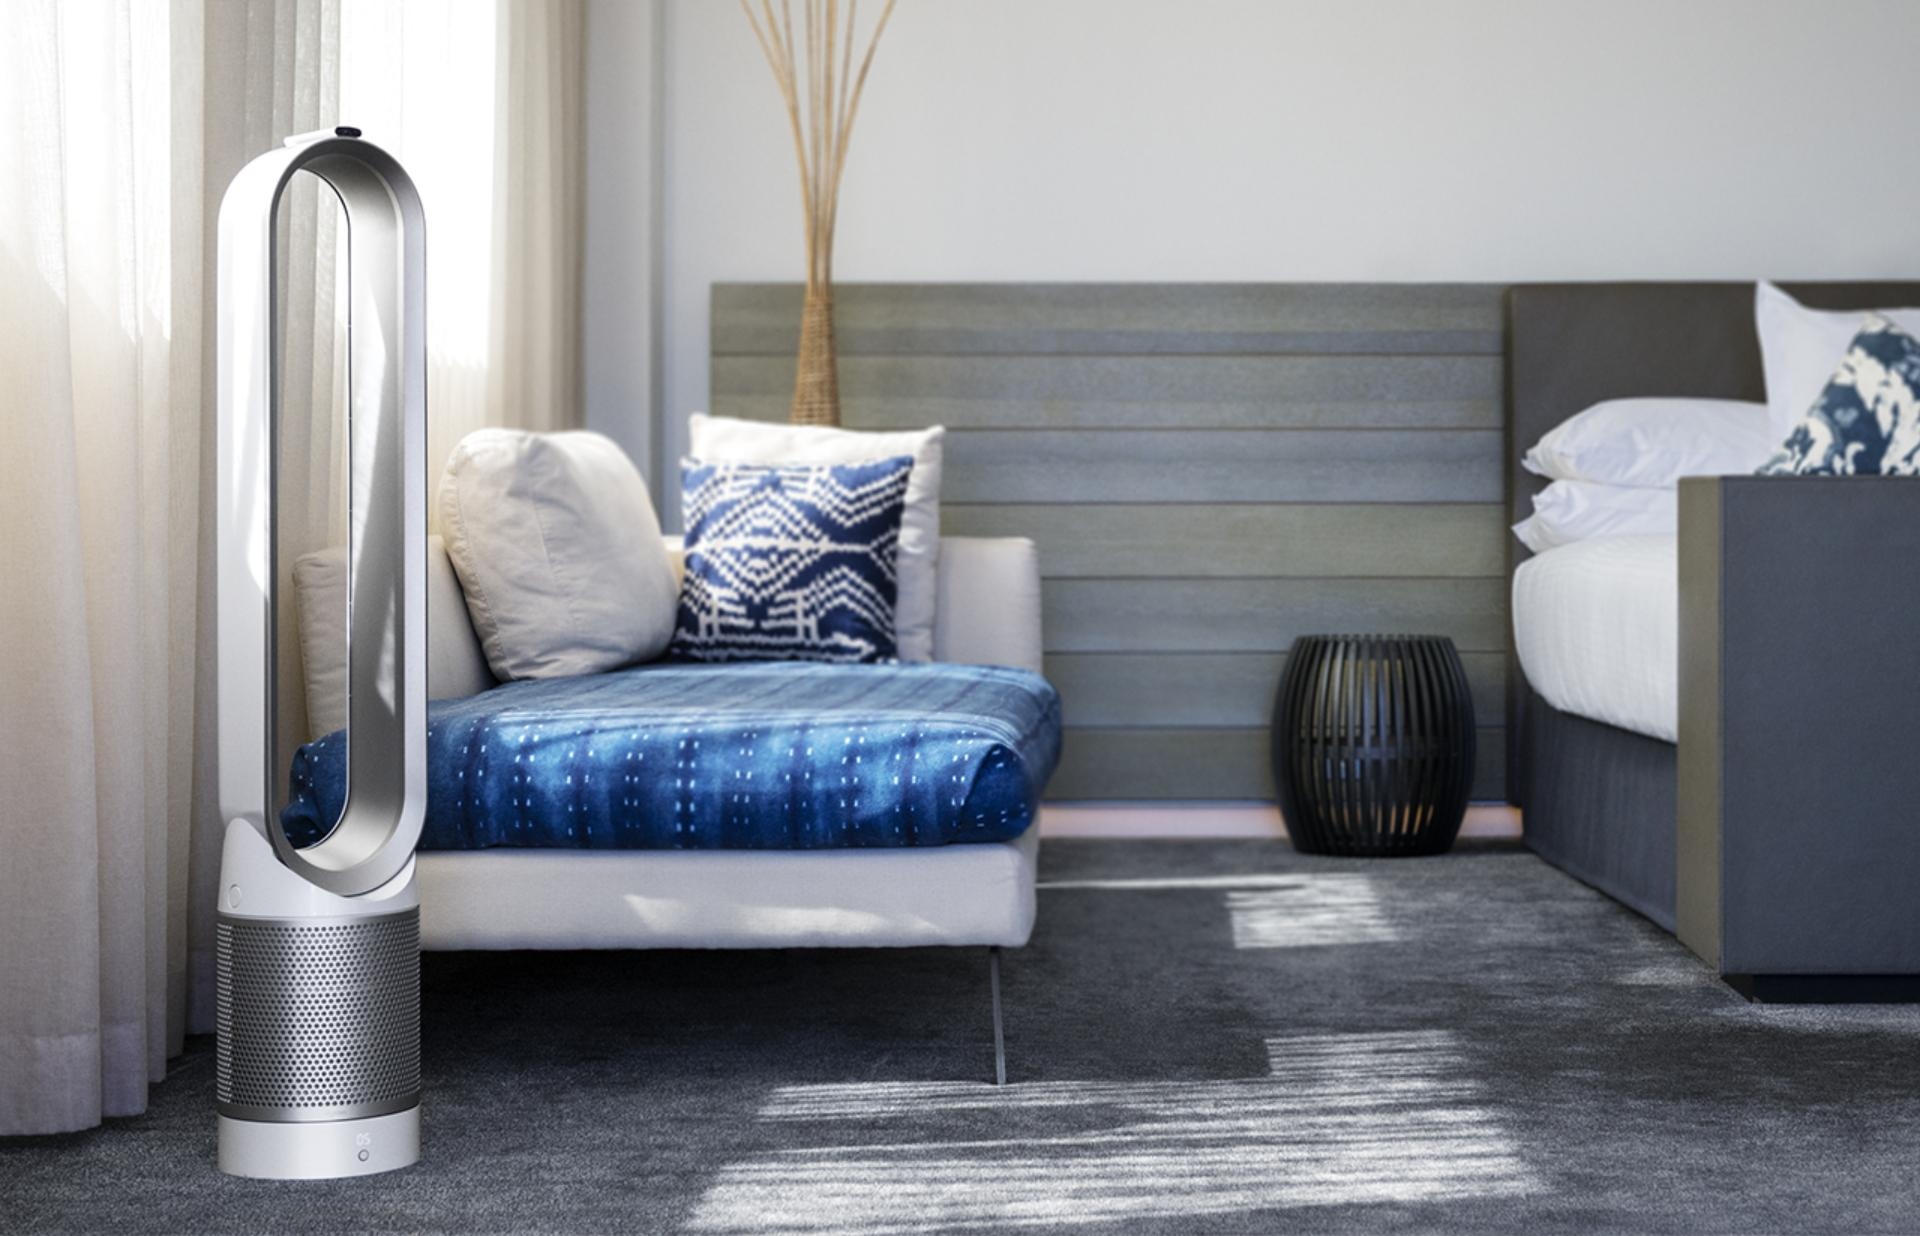 Dyson purifier in a bedroom